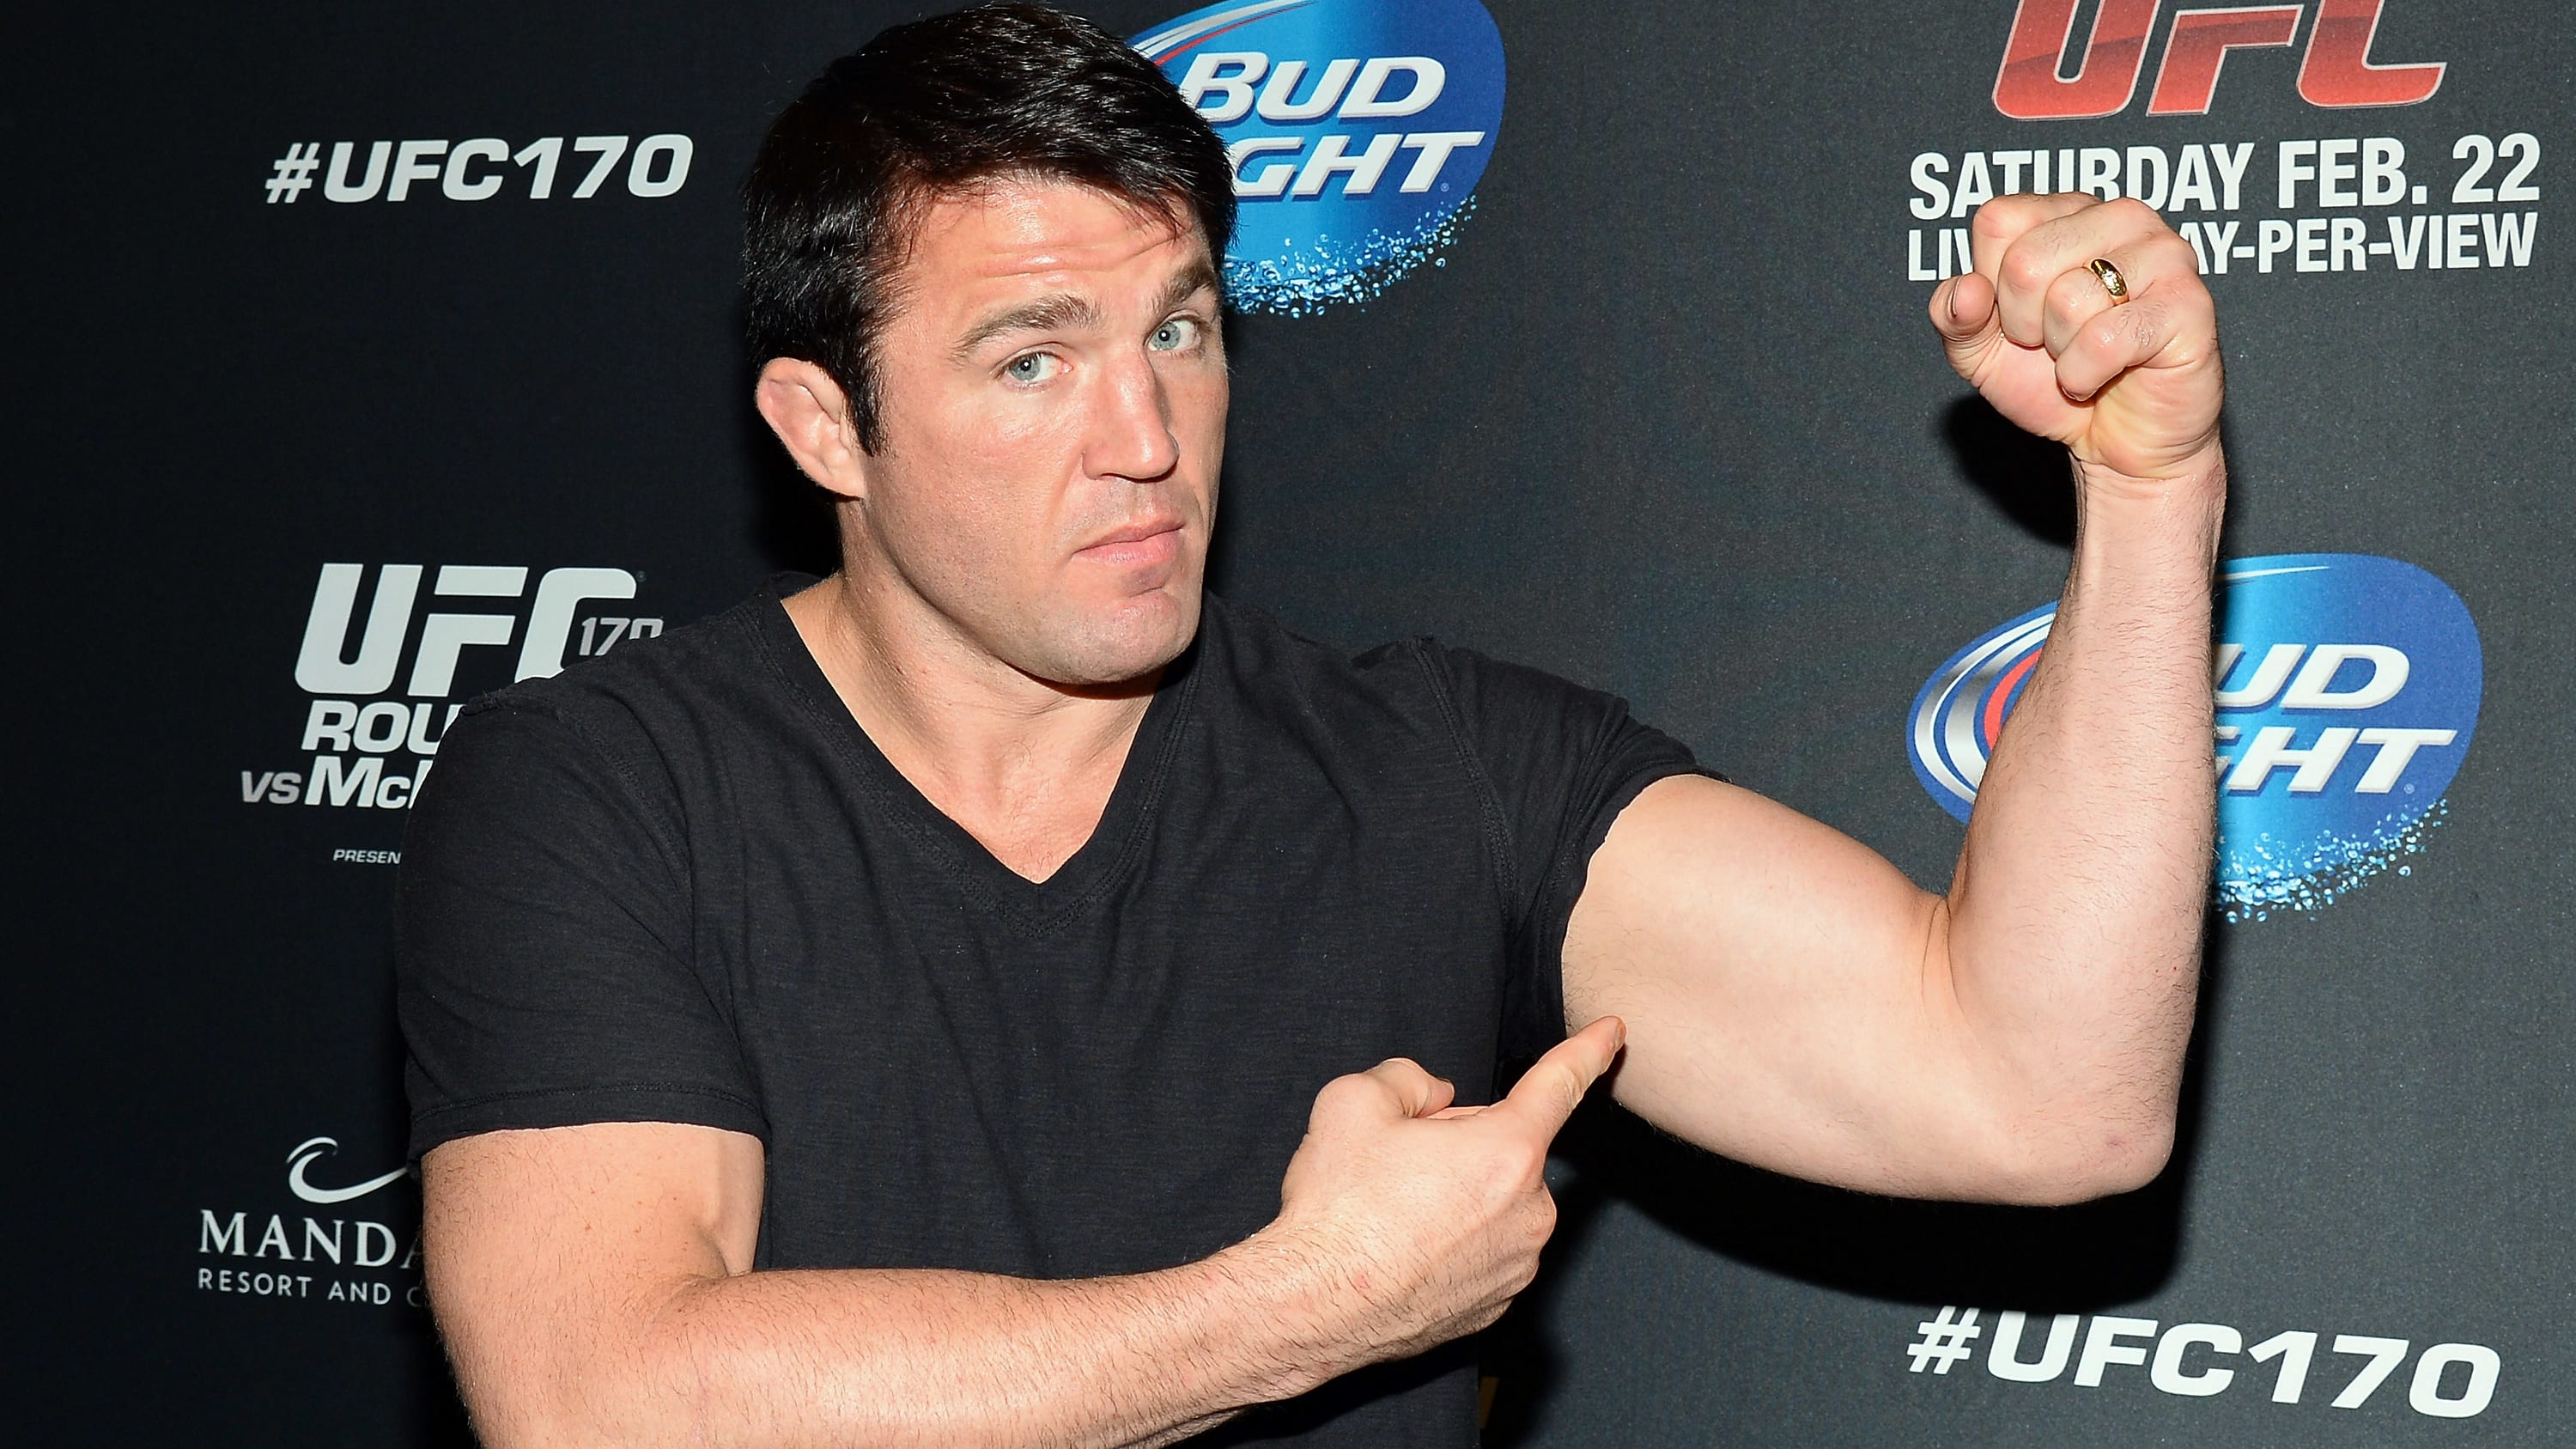 LAS VEGAS, NV - FEBRUARY 22:  Mixed martial artist Chael Sonnen attends the UFC 170 event at the Mandalay Bay Events Center on February 22, 2014 in Las Vegas, Nevada.  (Photo by Ethan Miller/Getty Images)